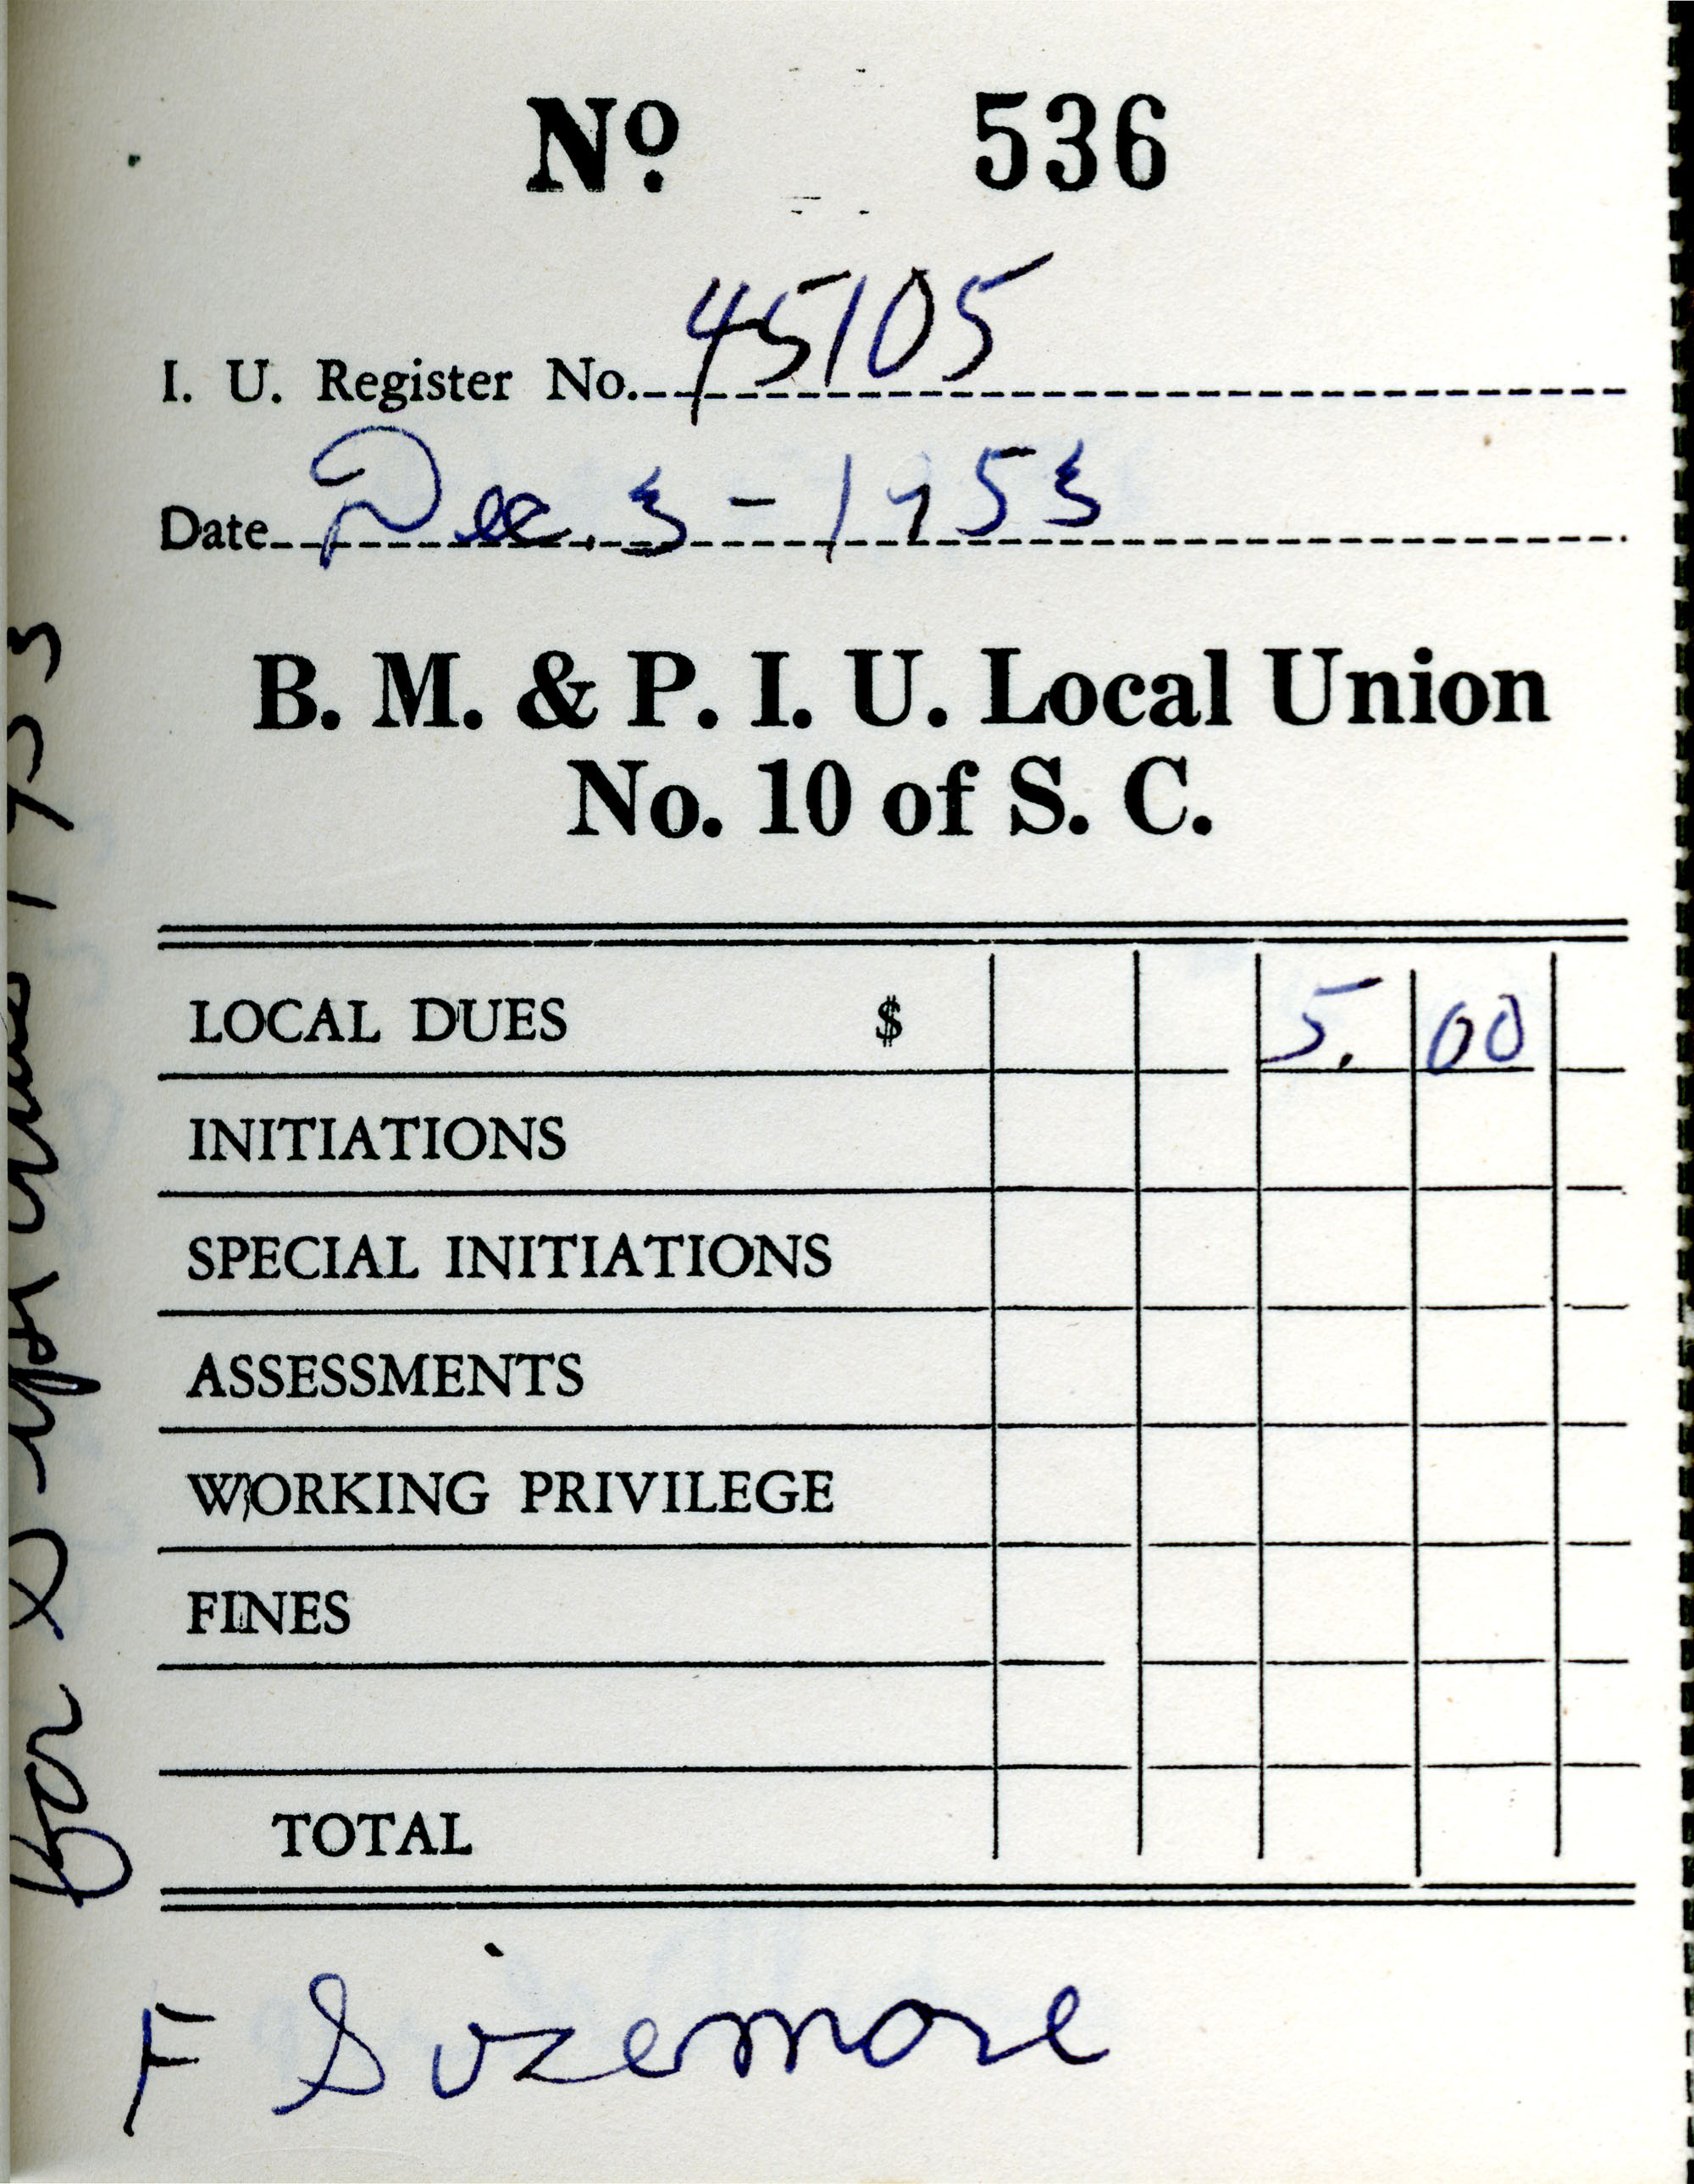 Receipt Book 2, Page 33